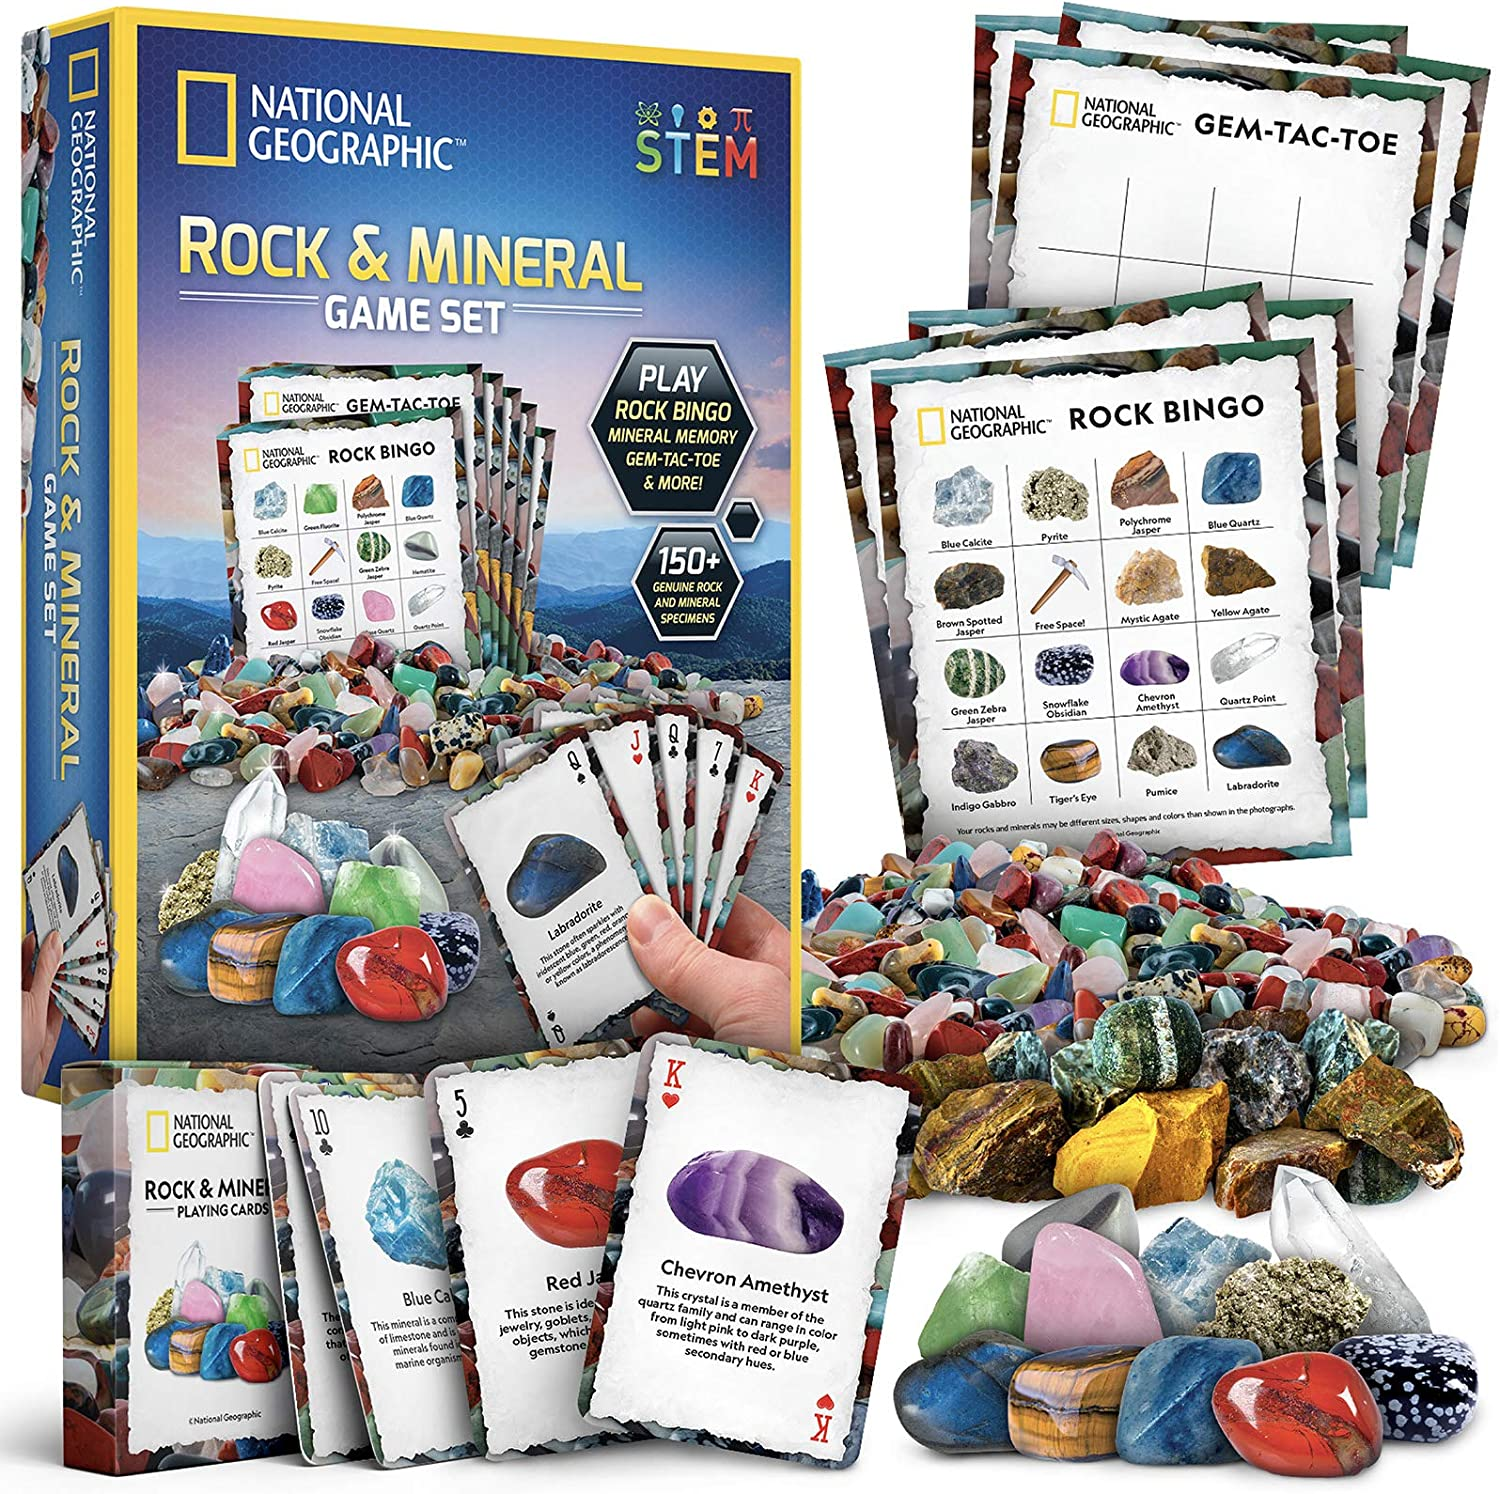 NATIONAL GEOGRAPHIC Rock Bingo Game -Play Rock Bingo, Mineral Memory, Gemstone Trivia, & Your Favorite Card Games, Collection Includes Over 150 Rocks and Minerals, Great Educational STEM Toys for Kids